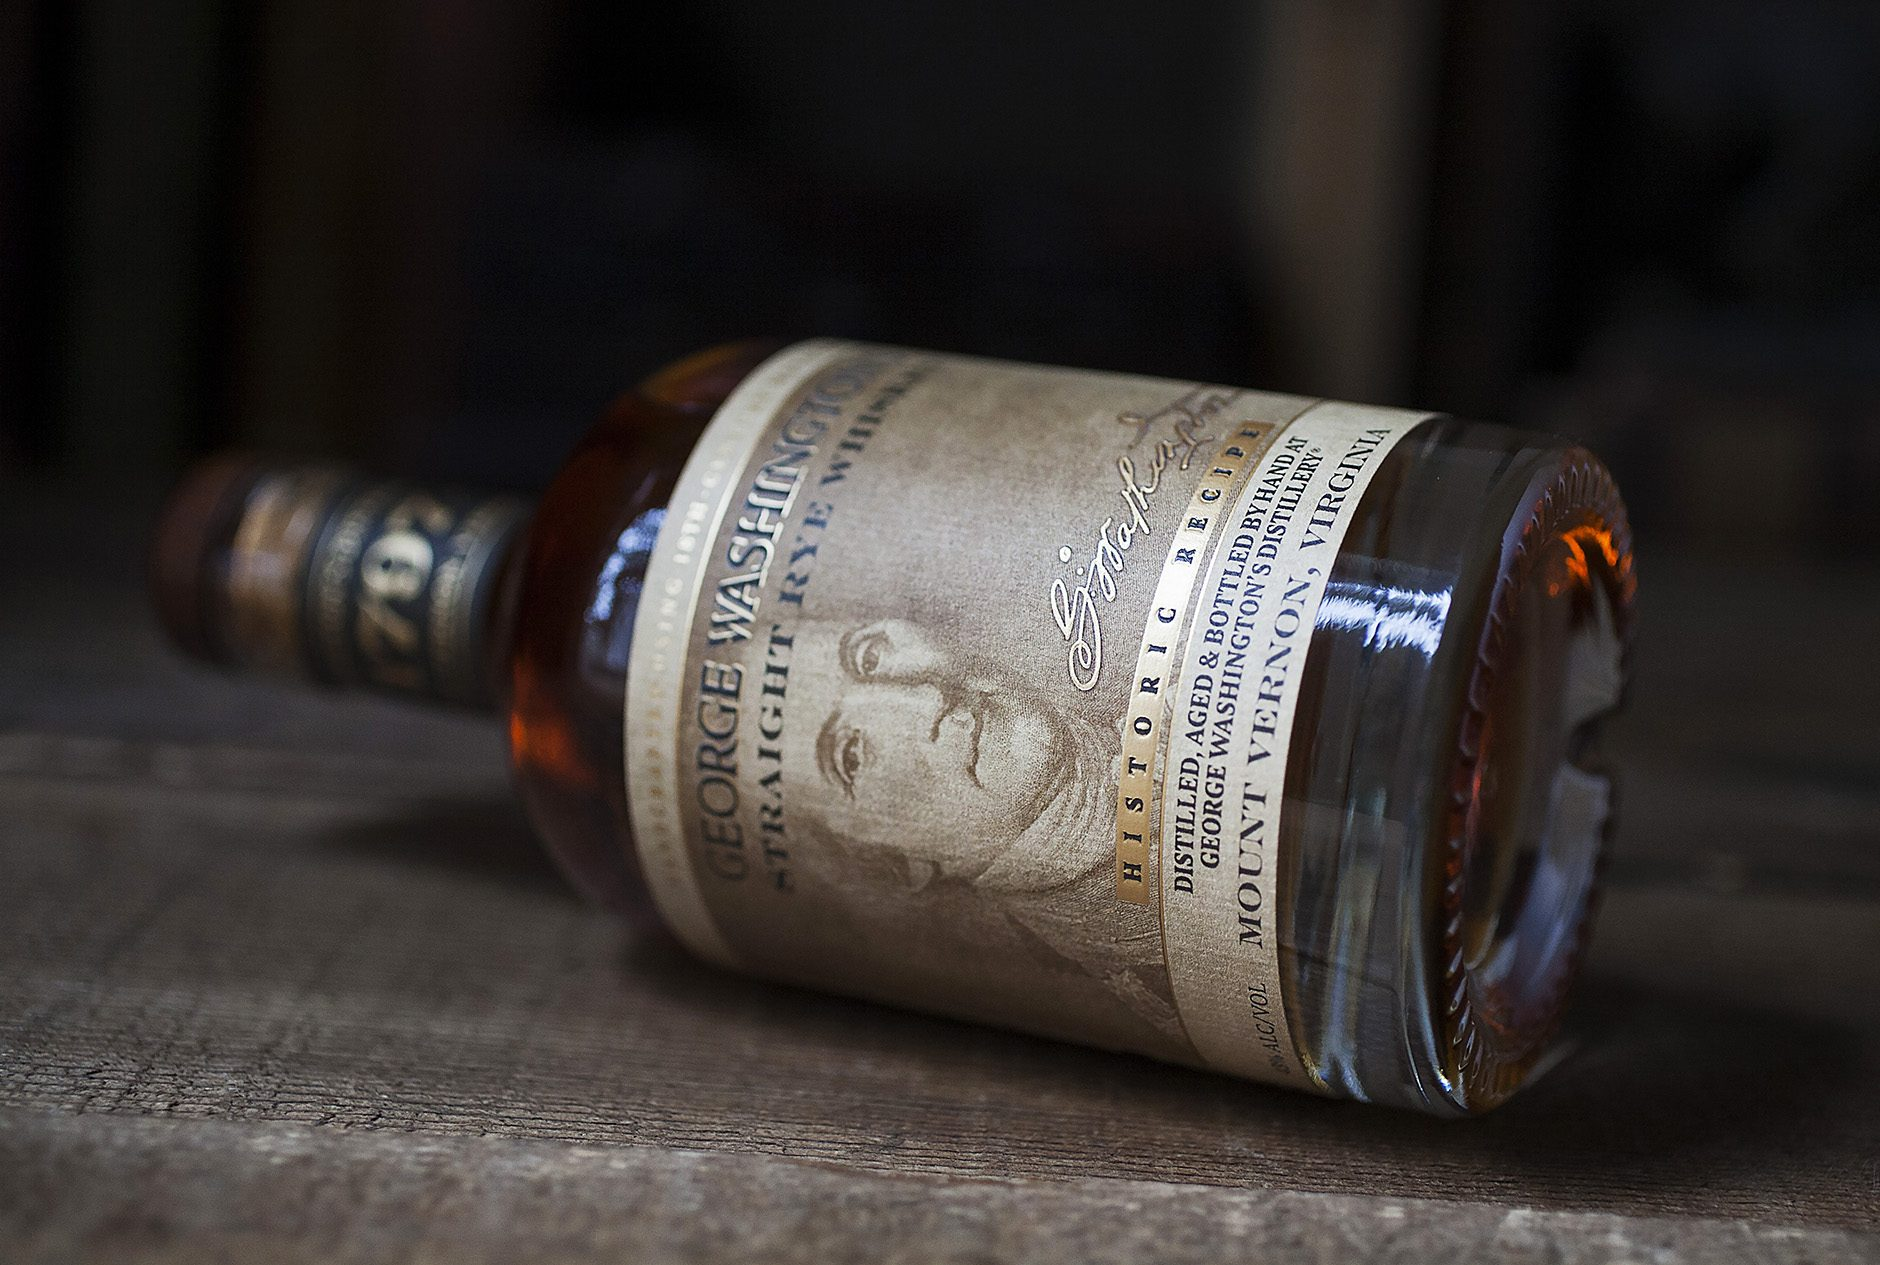 Random Fact: - George Washington distilled rye whiskey at his home in Mount Vernon. It was so popular he had to expand his distillery after only one summer of production.